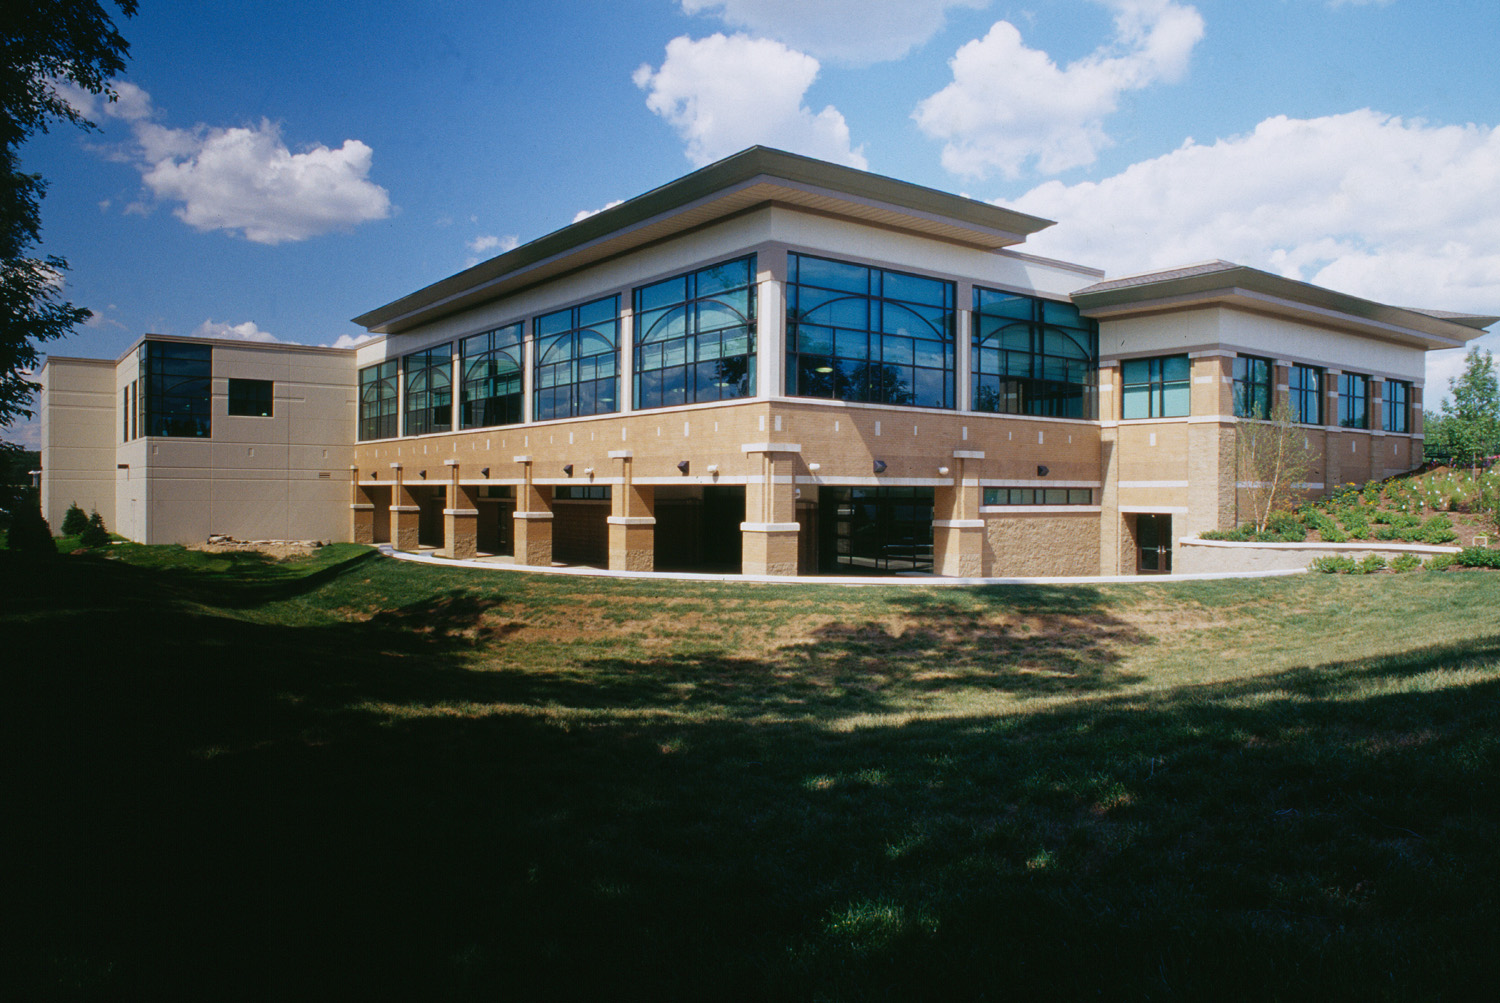 2000-046-23 Downers Grove Rec Center ext back building.jpg